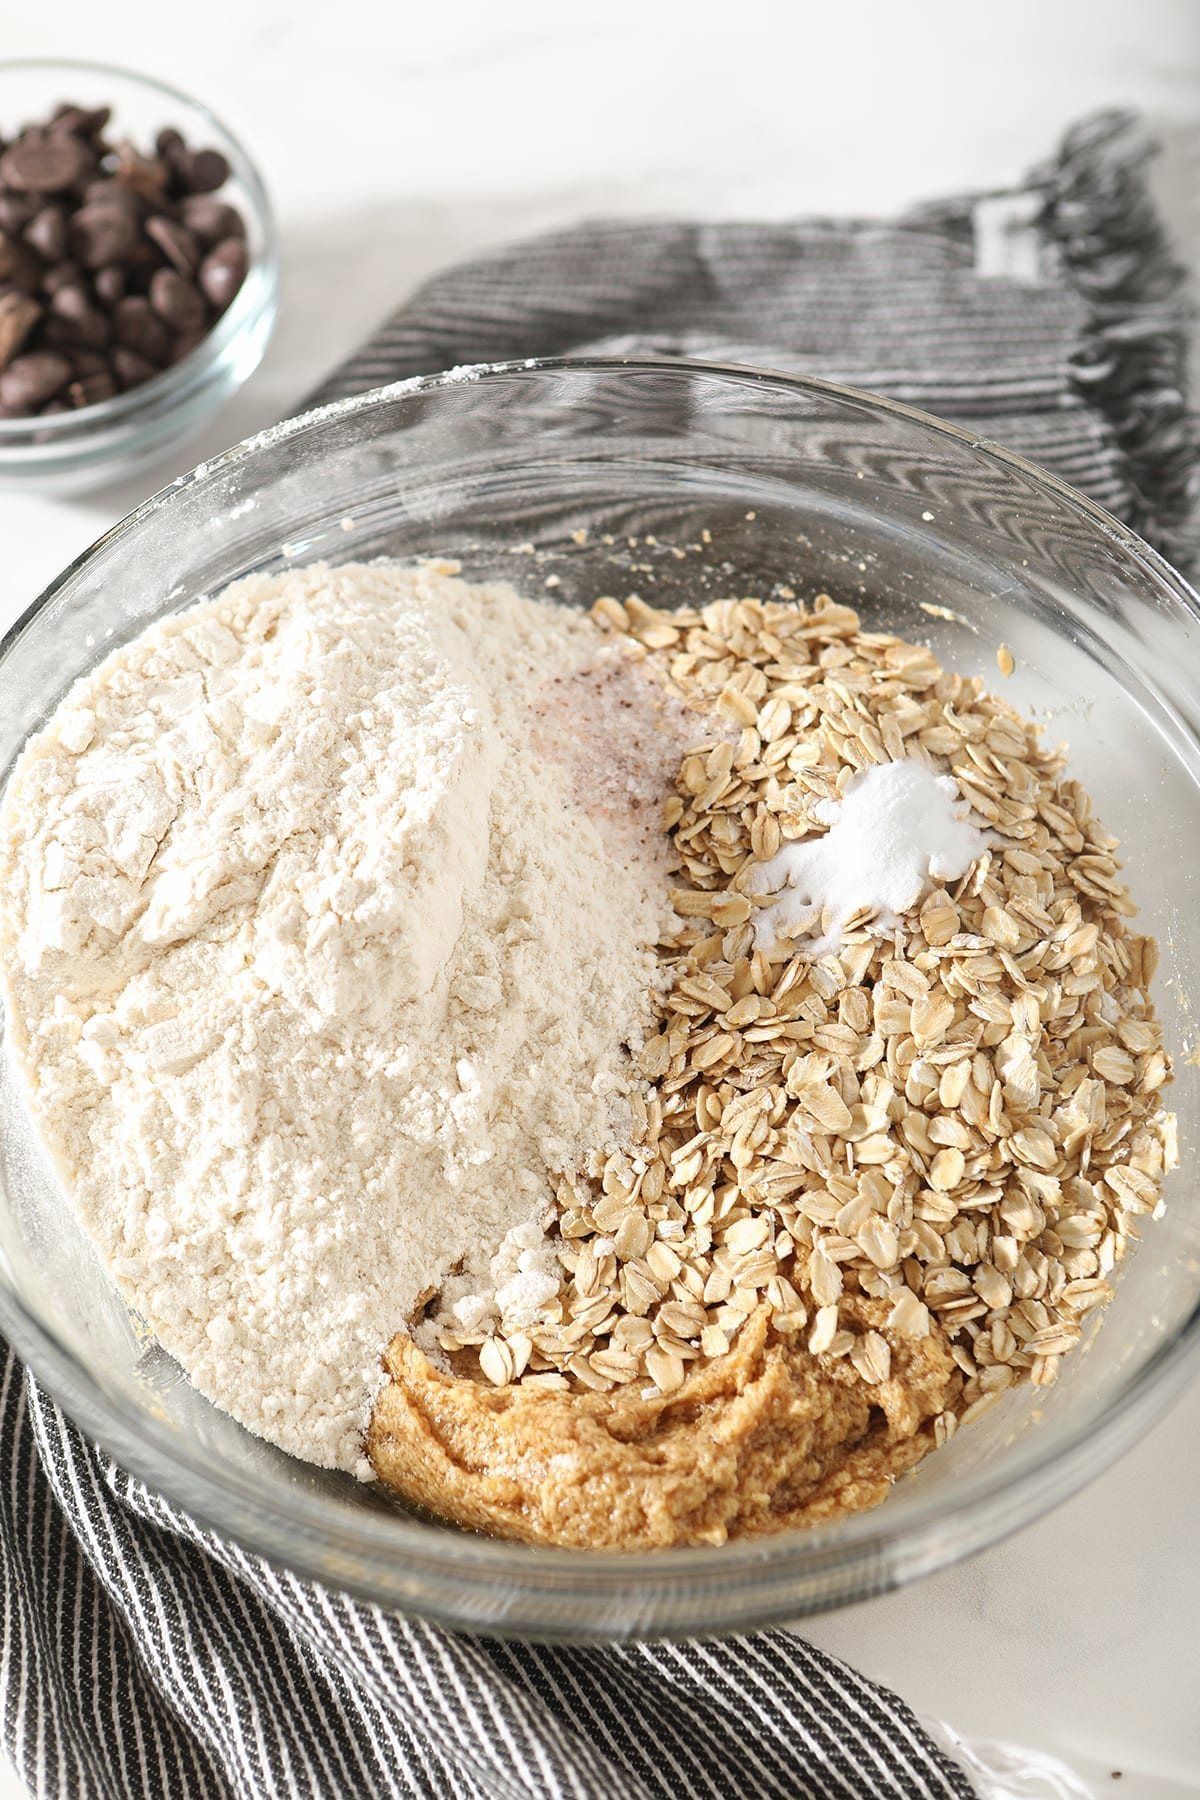 Flour, oats, leaveners and salt on top of wet ingredients in a bowl on marble